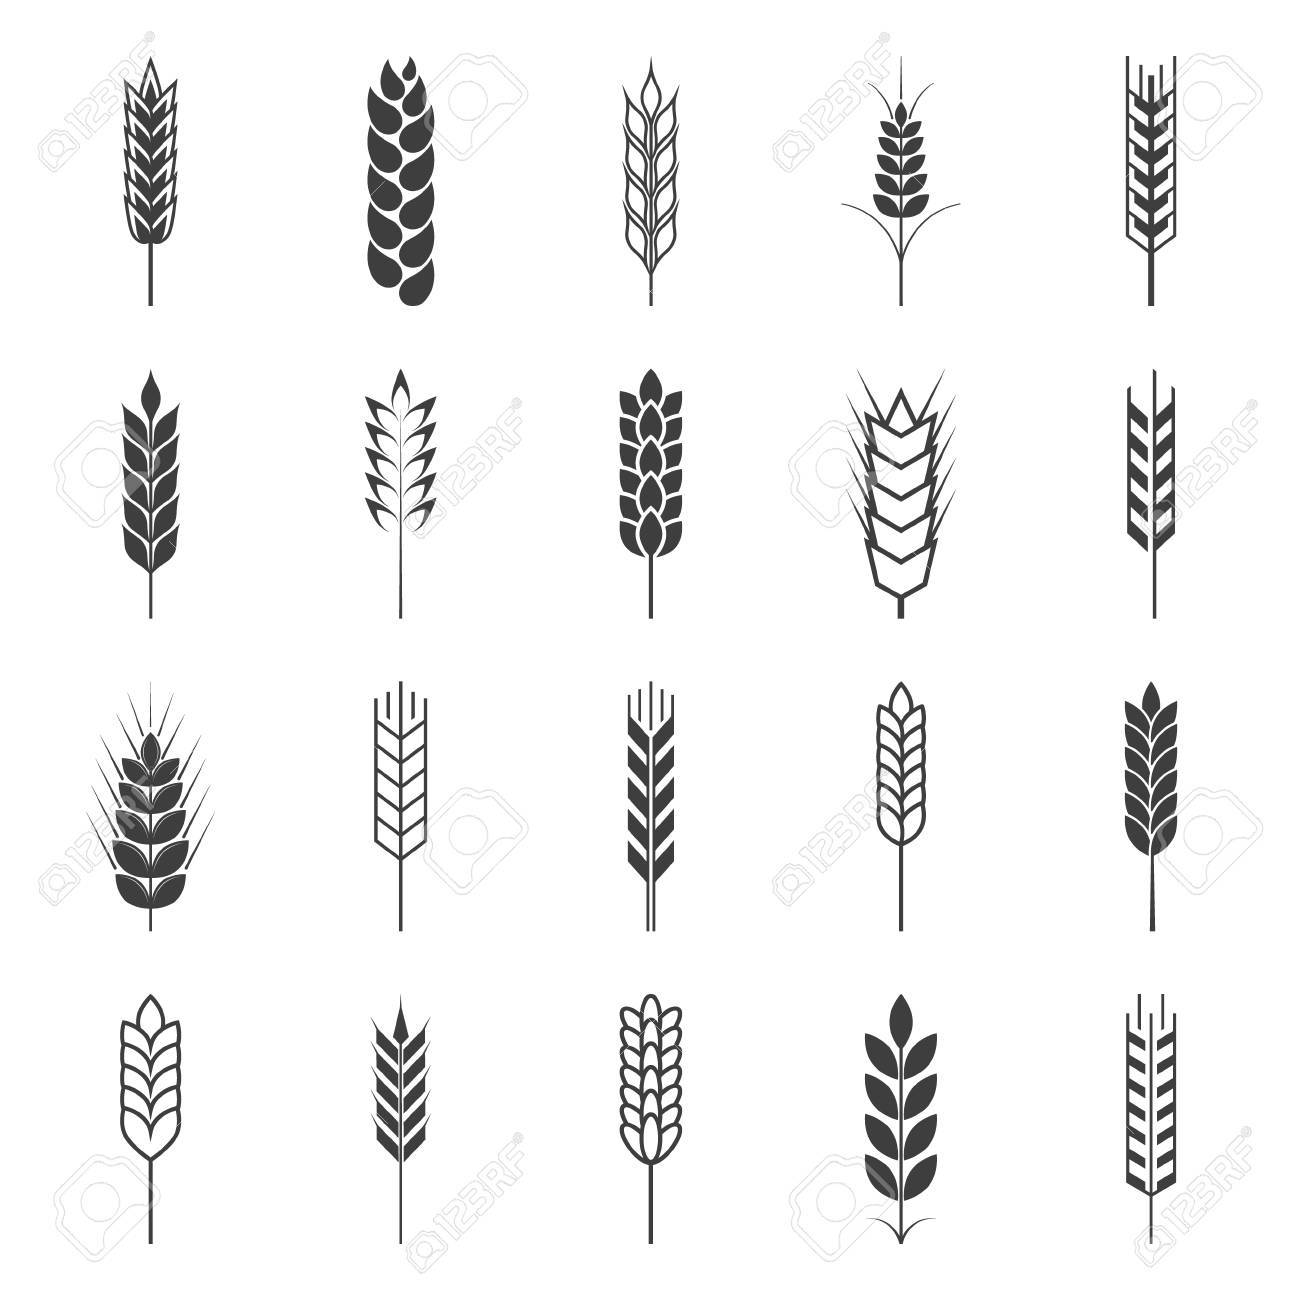 Set of simple wheat ears icons and design elements. Vector EPS8 illustration. - 50384872